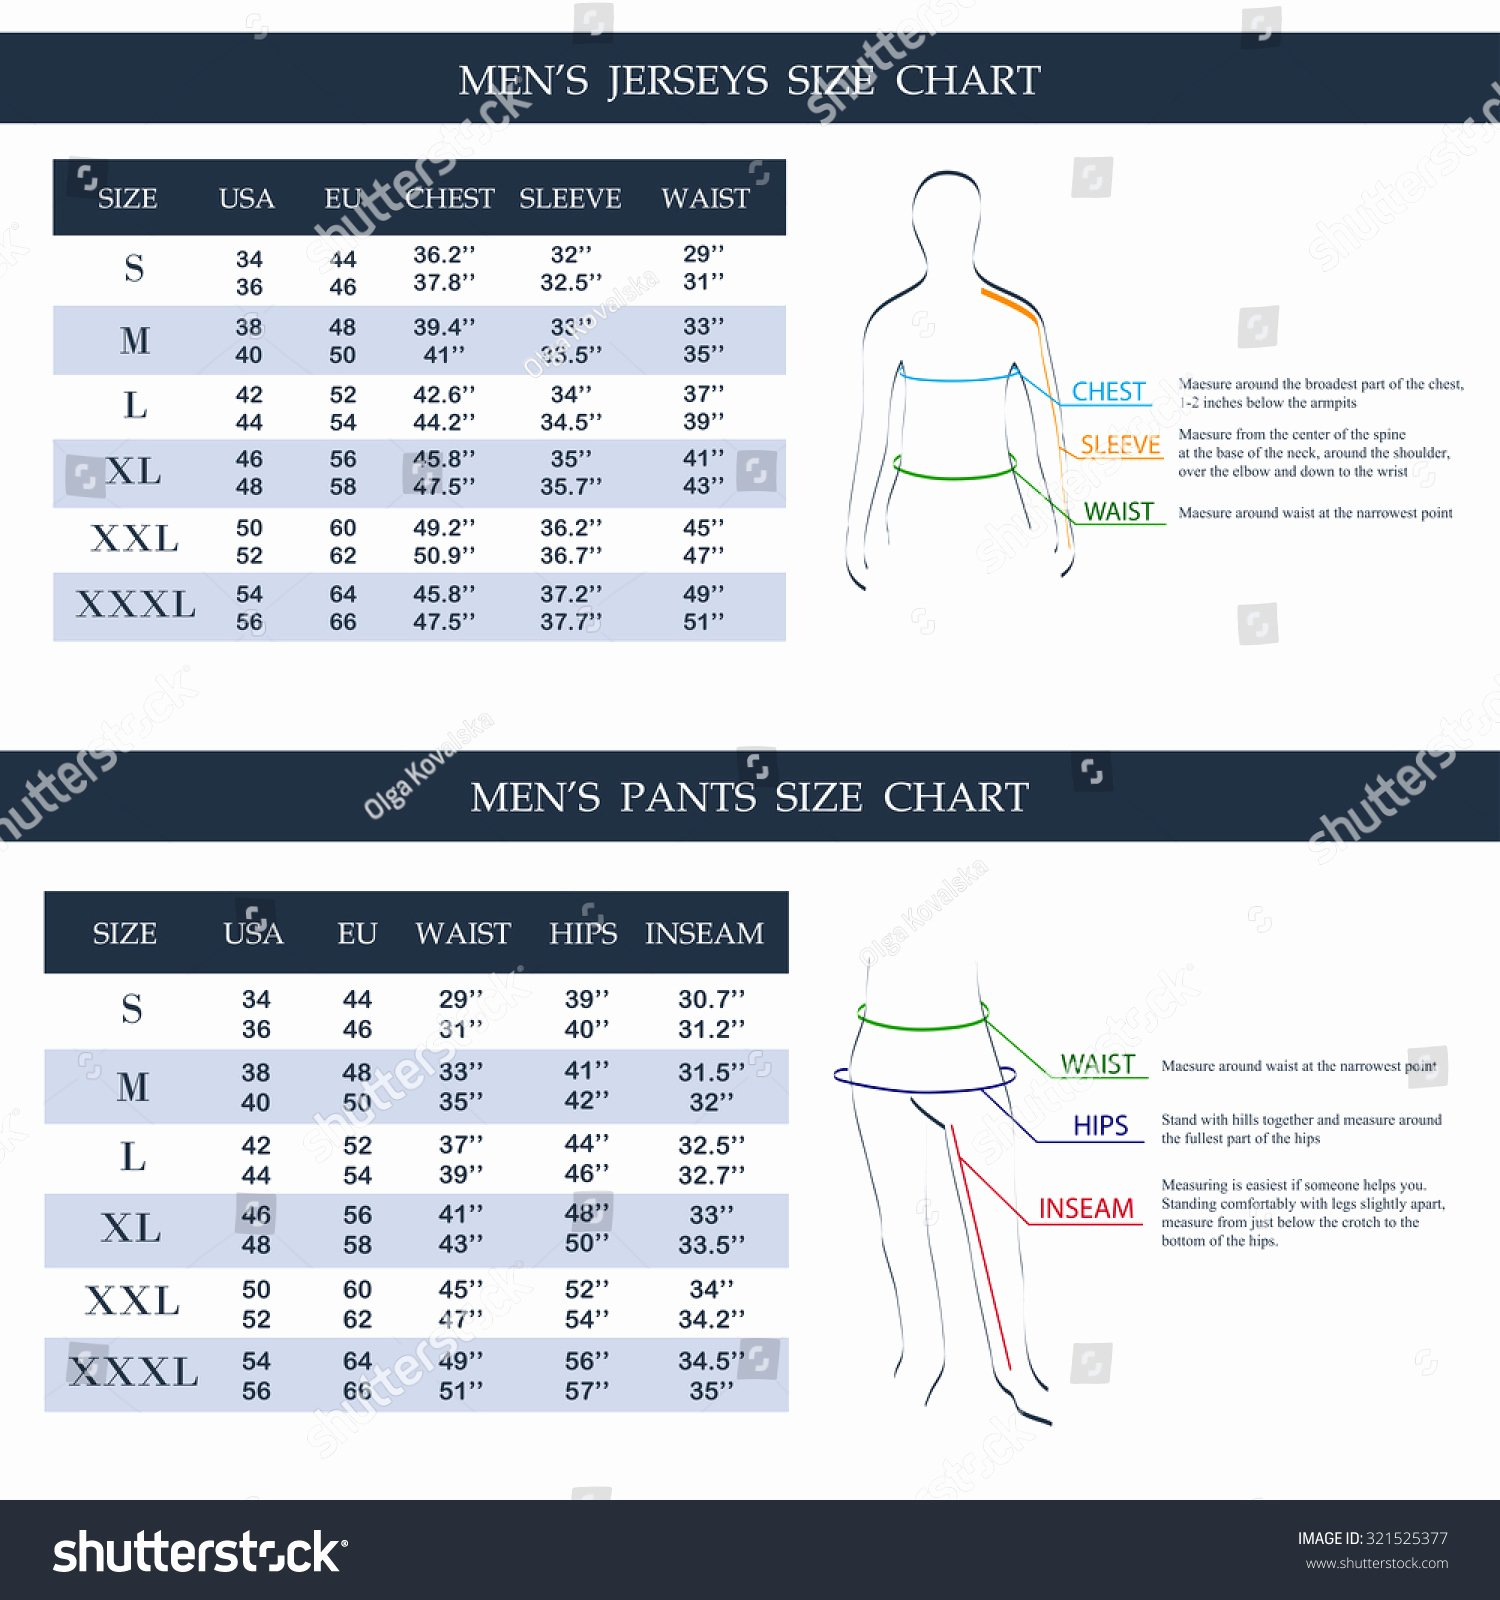 Clothing Size Chart Template Luxury Men S Jerseys Size Chart Men S Pants Size Chart Measurement Diagram Male Body